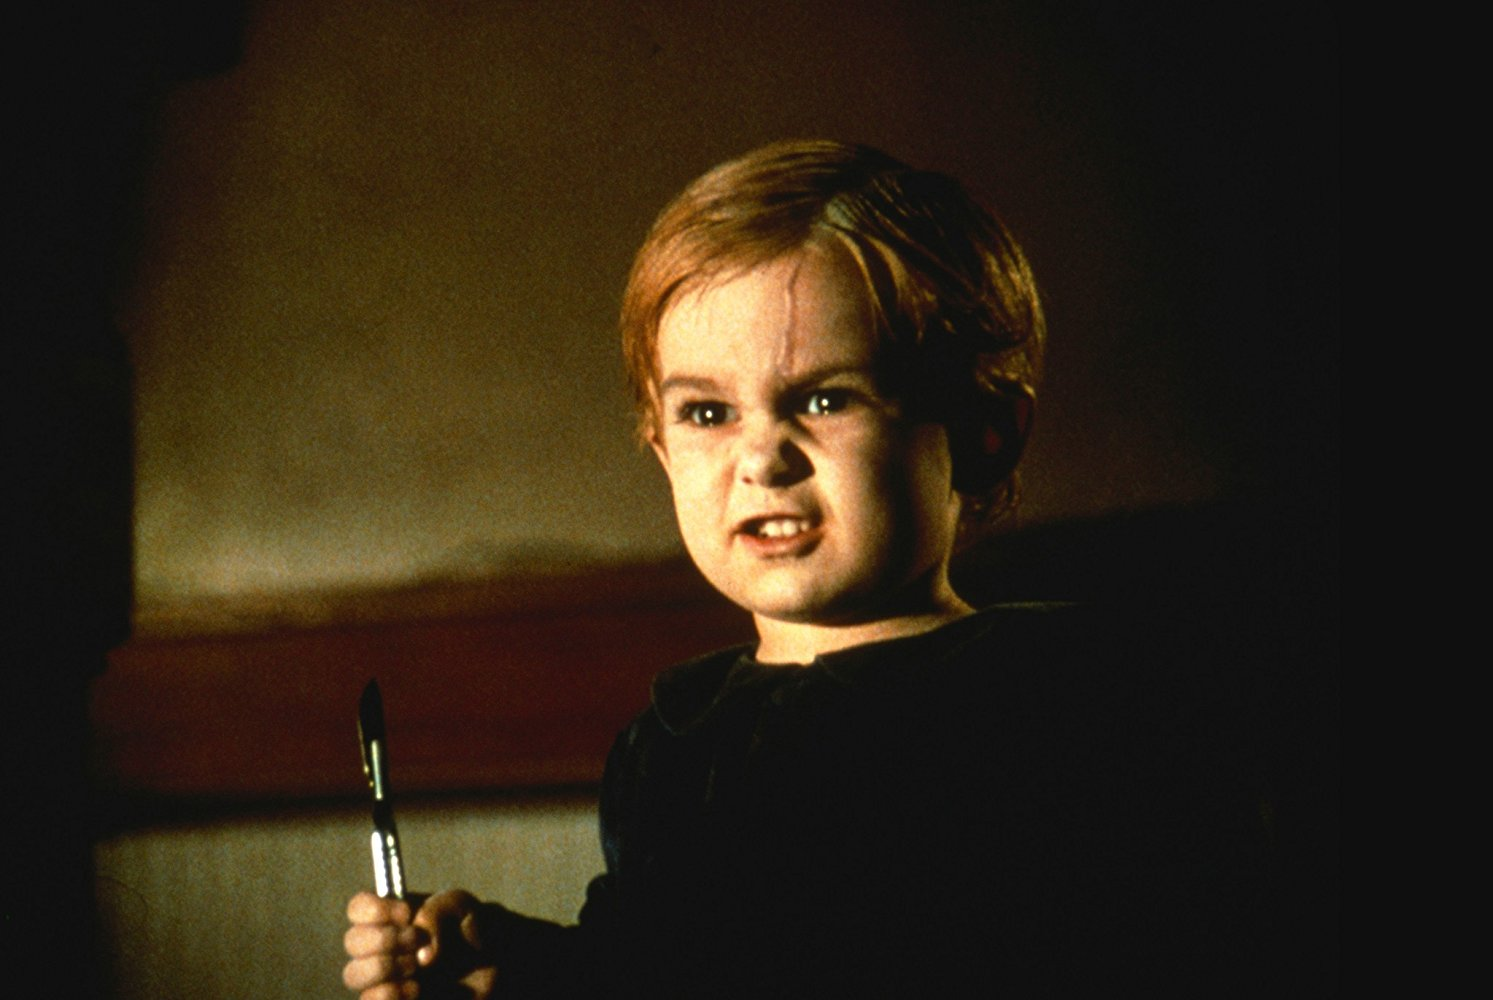 Mike Hughes as Gage in Pet Sematary (1989)